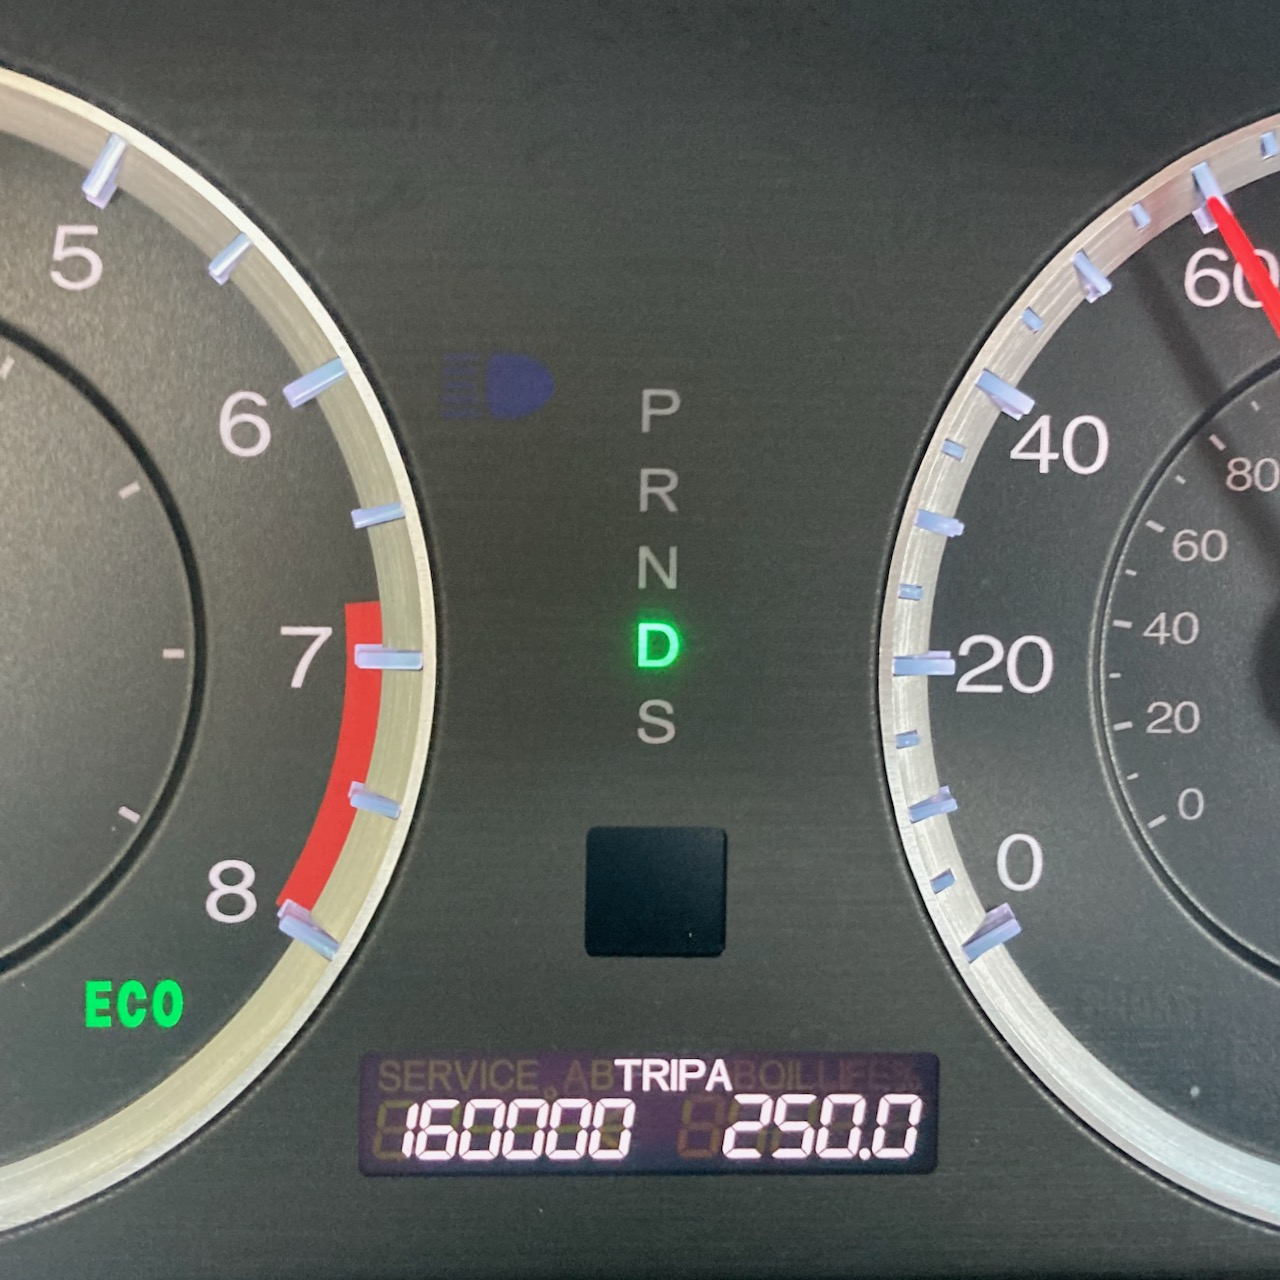 Car odometer reading 160000 TRIP A 250.0